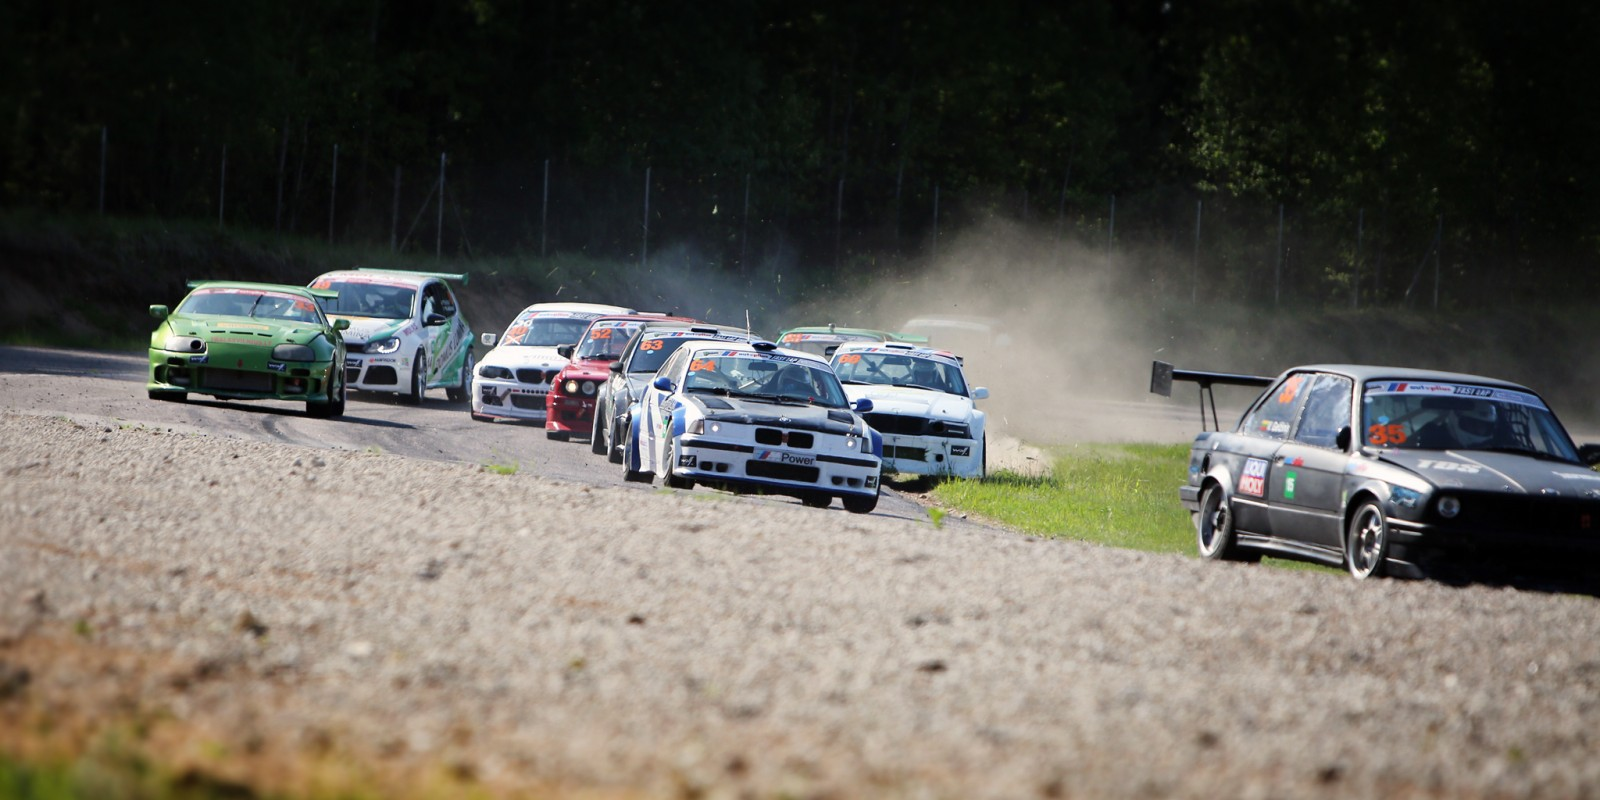 Image album from the second day of the Fast Lap event in Kaunas, Lithuania.